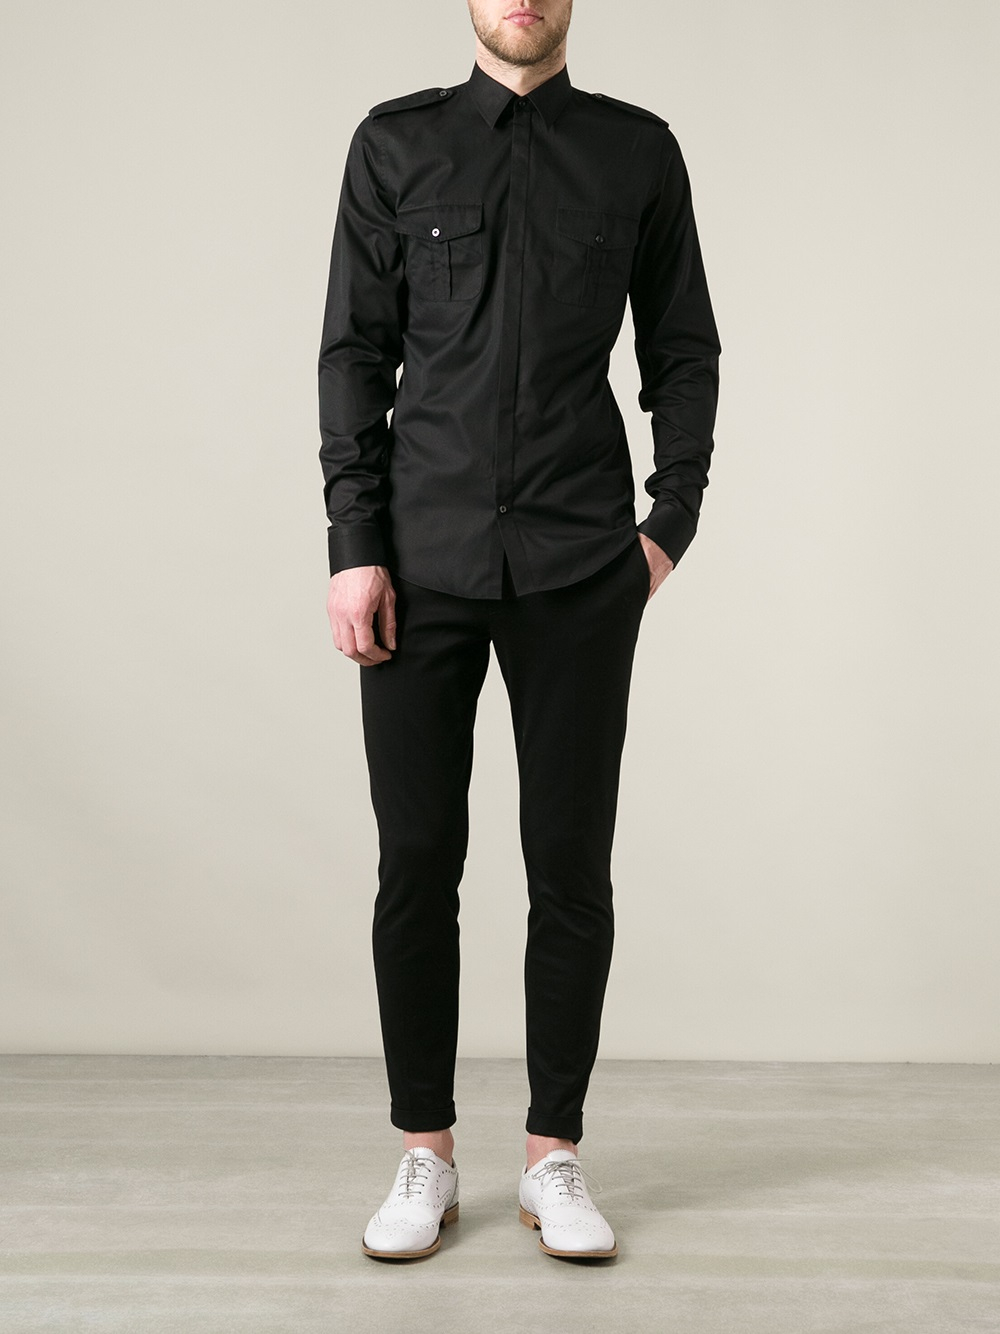 gucci-black-military-style-shirt-product-1-18397413-3-408220168-normal.jpeg